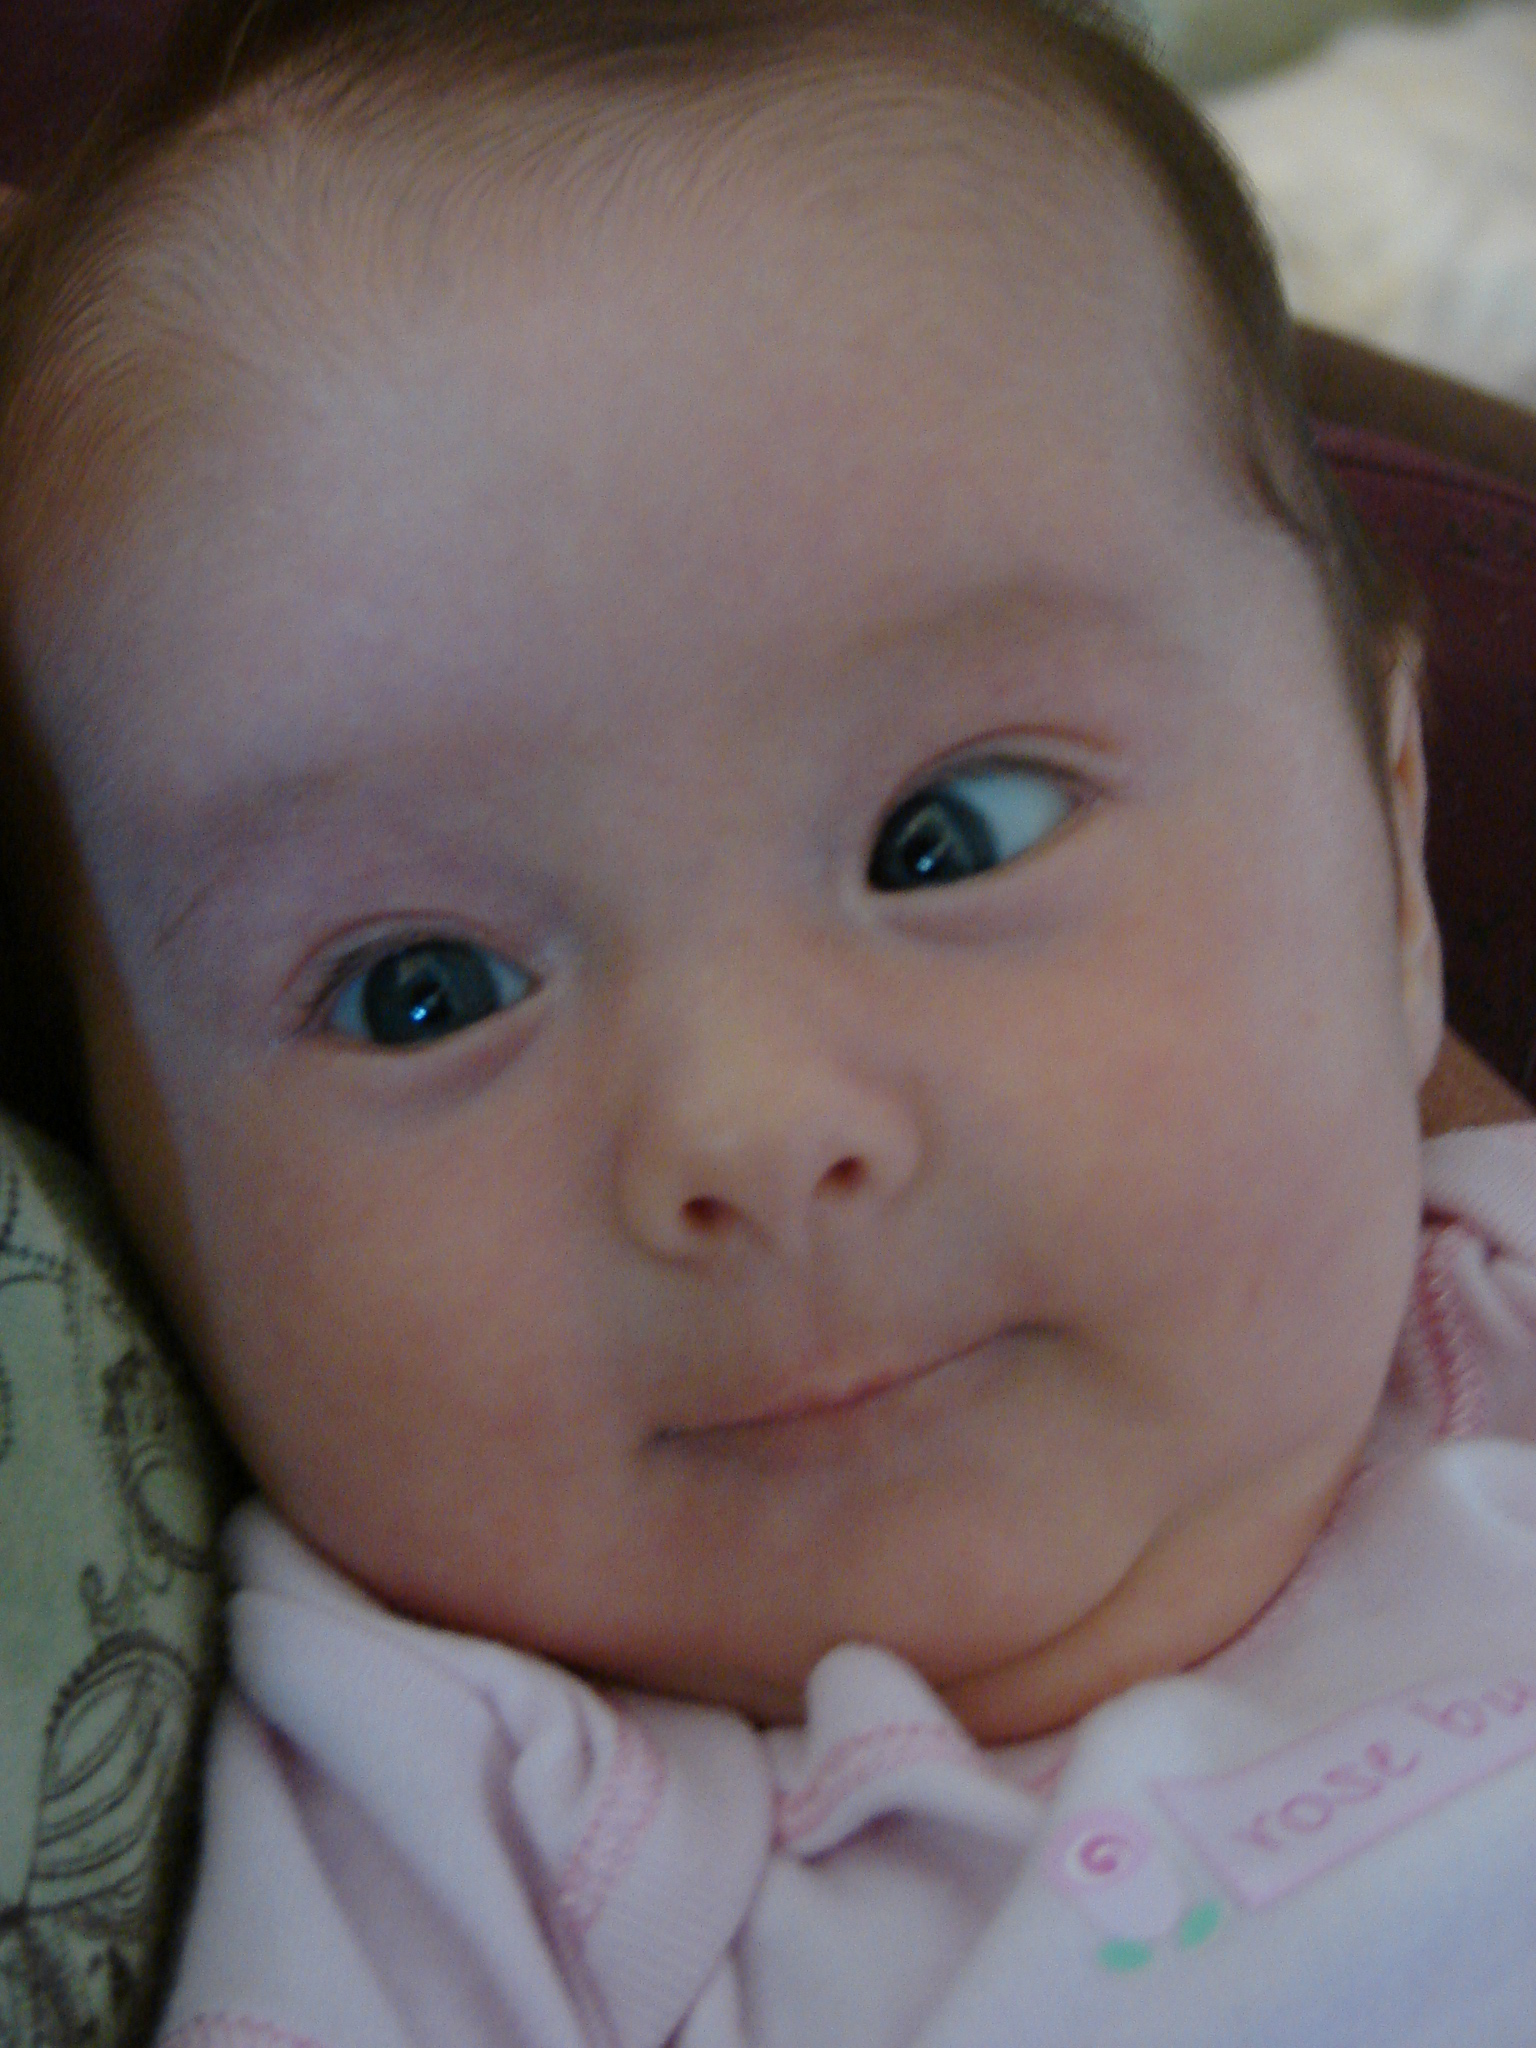 This baby's left eye turns in.